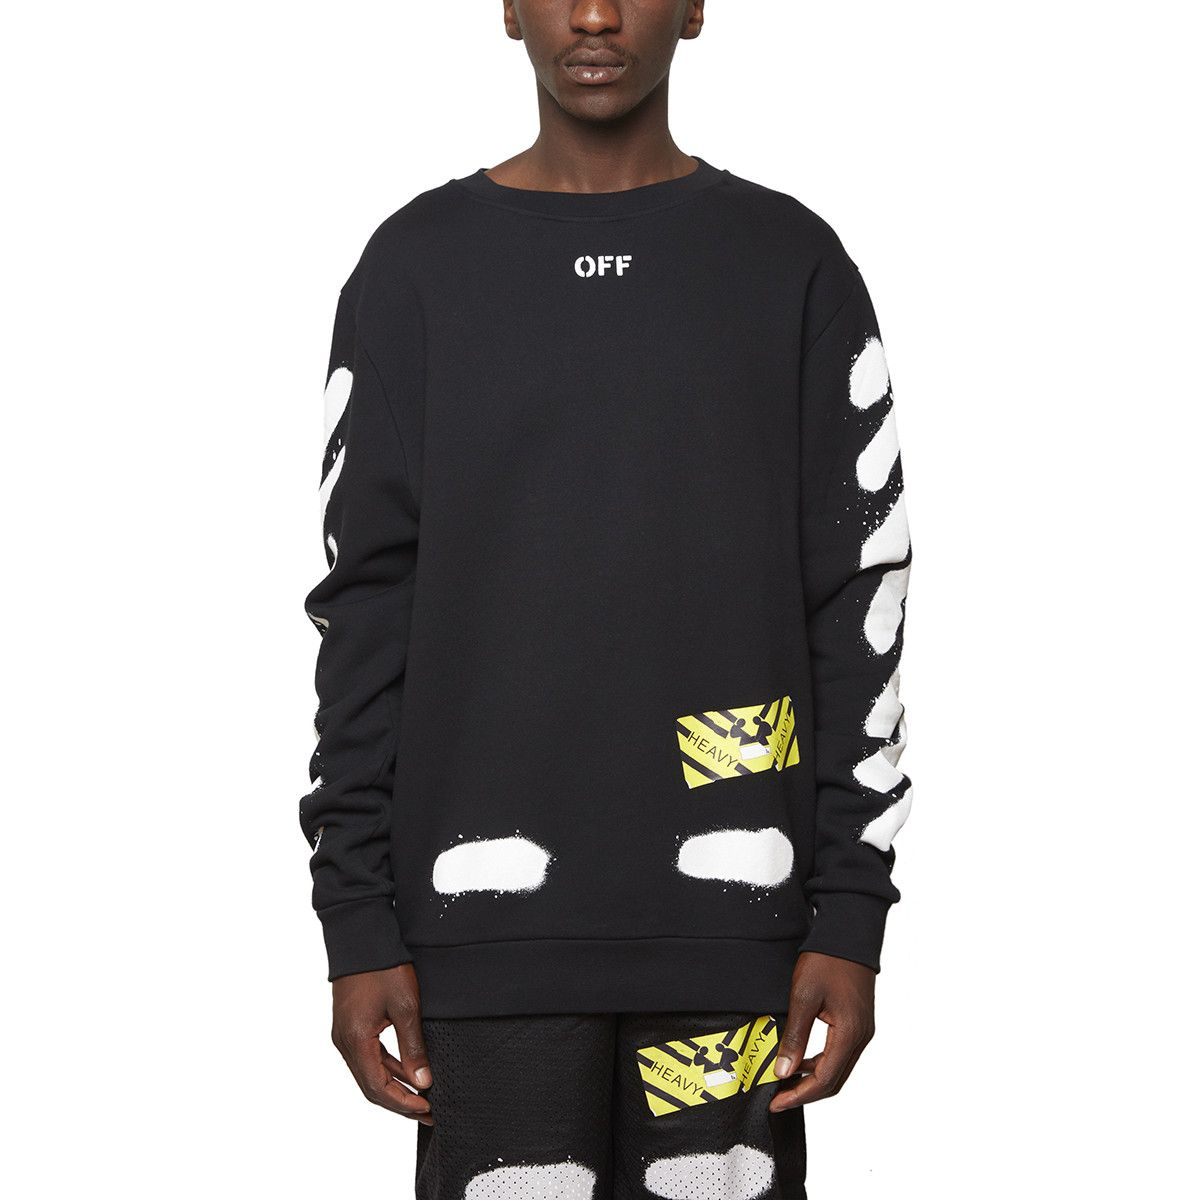 fd31e6dd Champion hoodie from the S/S2018 Off-White c/o Virgil Abloh collection in  green